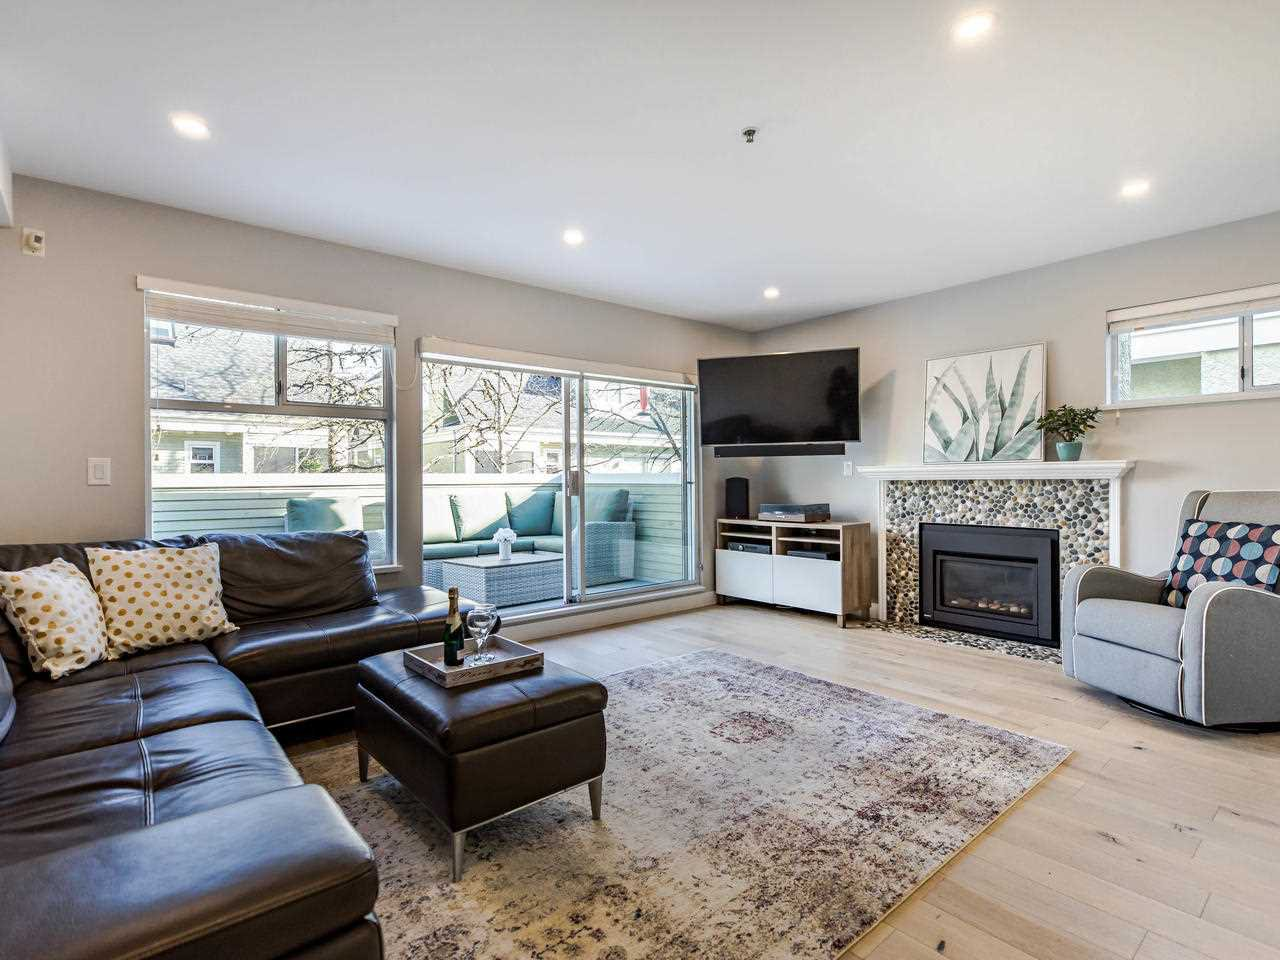 Main Photo: 17 4163 SOPHIA Street in Vancouver: Main Townhouse for sale (Vancouver East)  : MLS®# R2436690